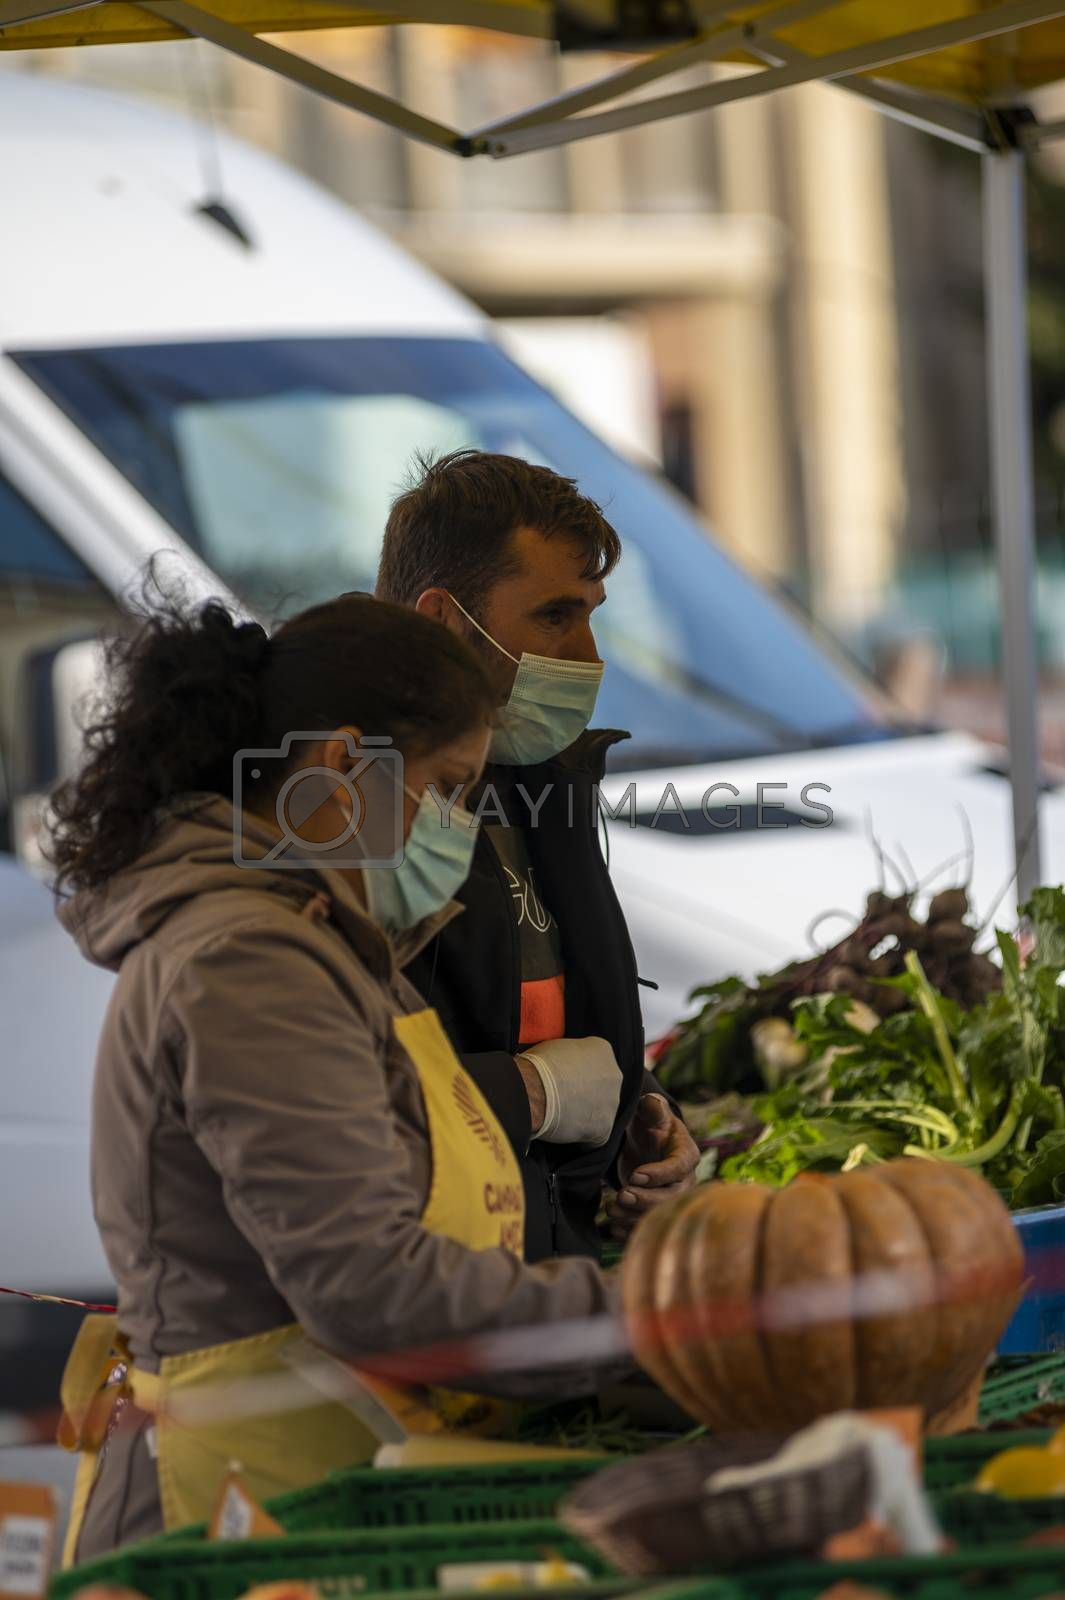 terni,italy october 23 2020:walking man and woman at the market selling vegetables